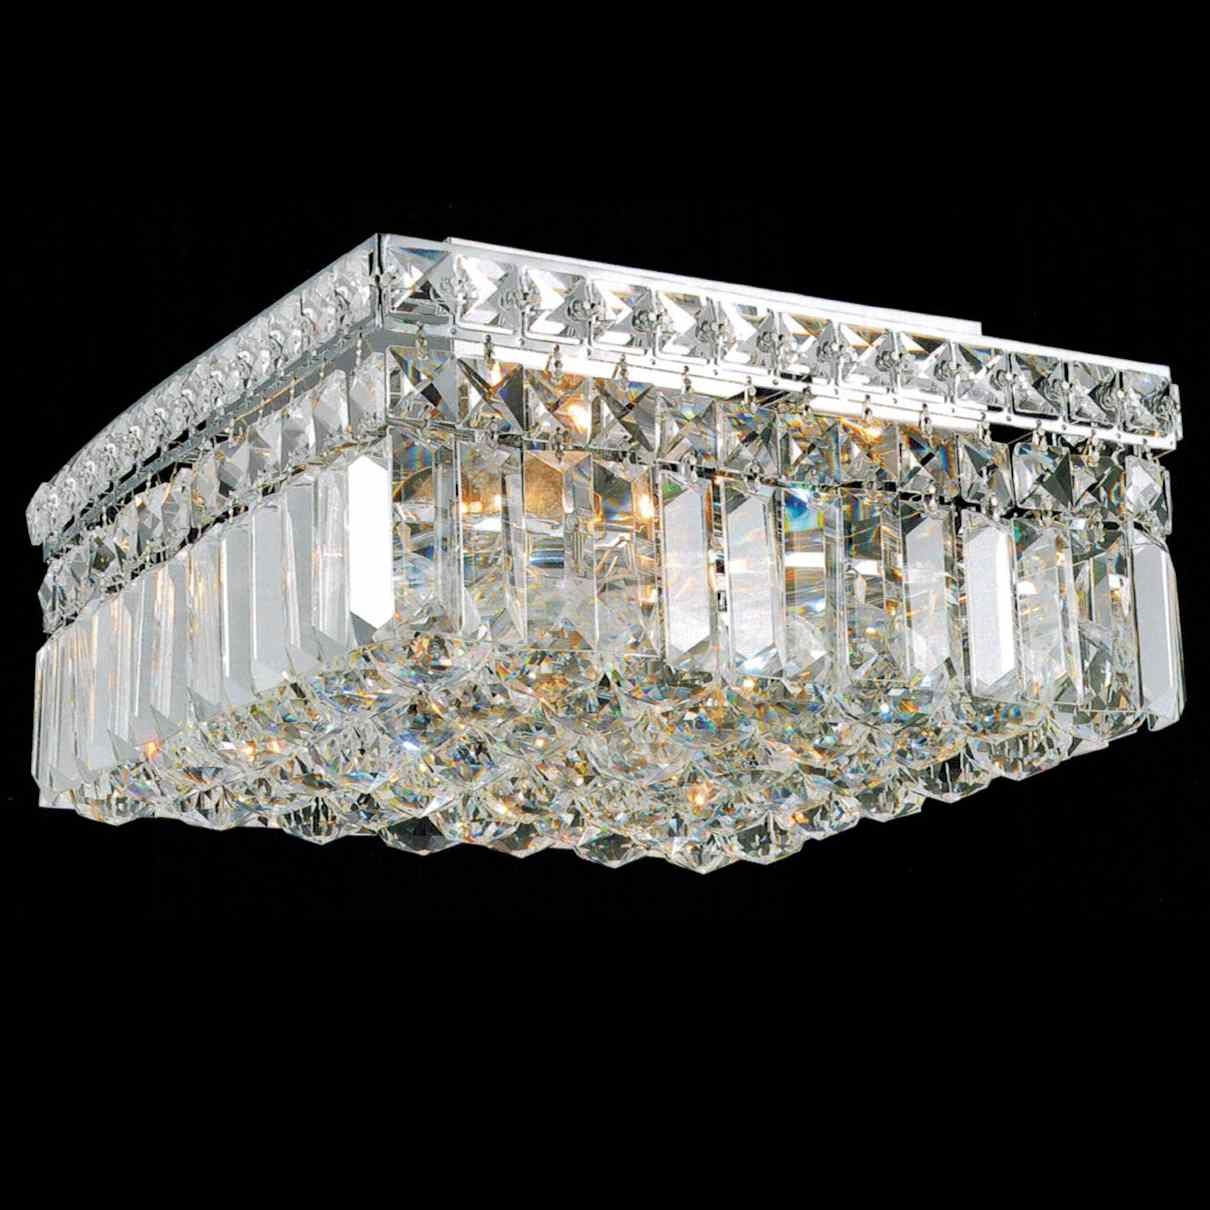 Flush Mount Crystal Chandelier Lighting Throughout 4 Light Chrome Crystal Chandeliers (Image 7 of 25)